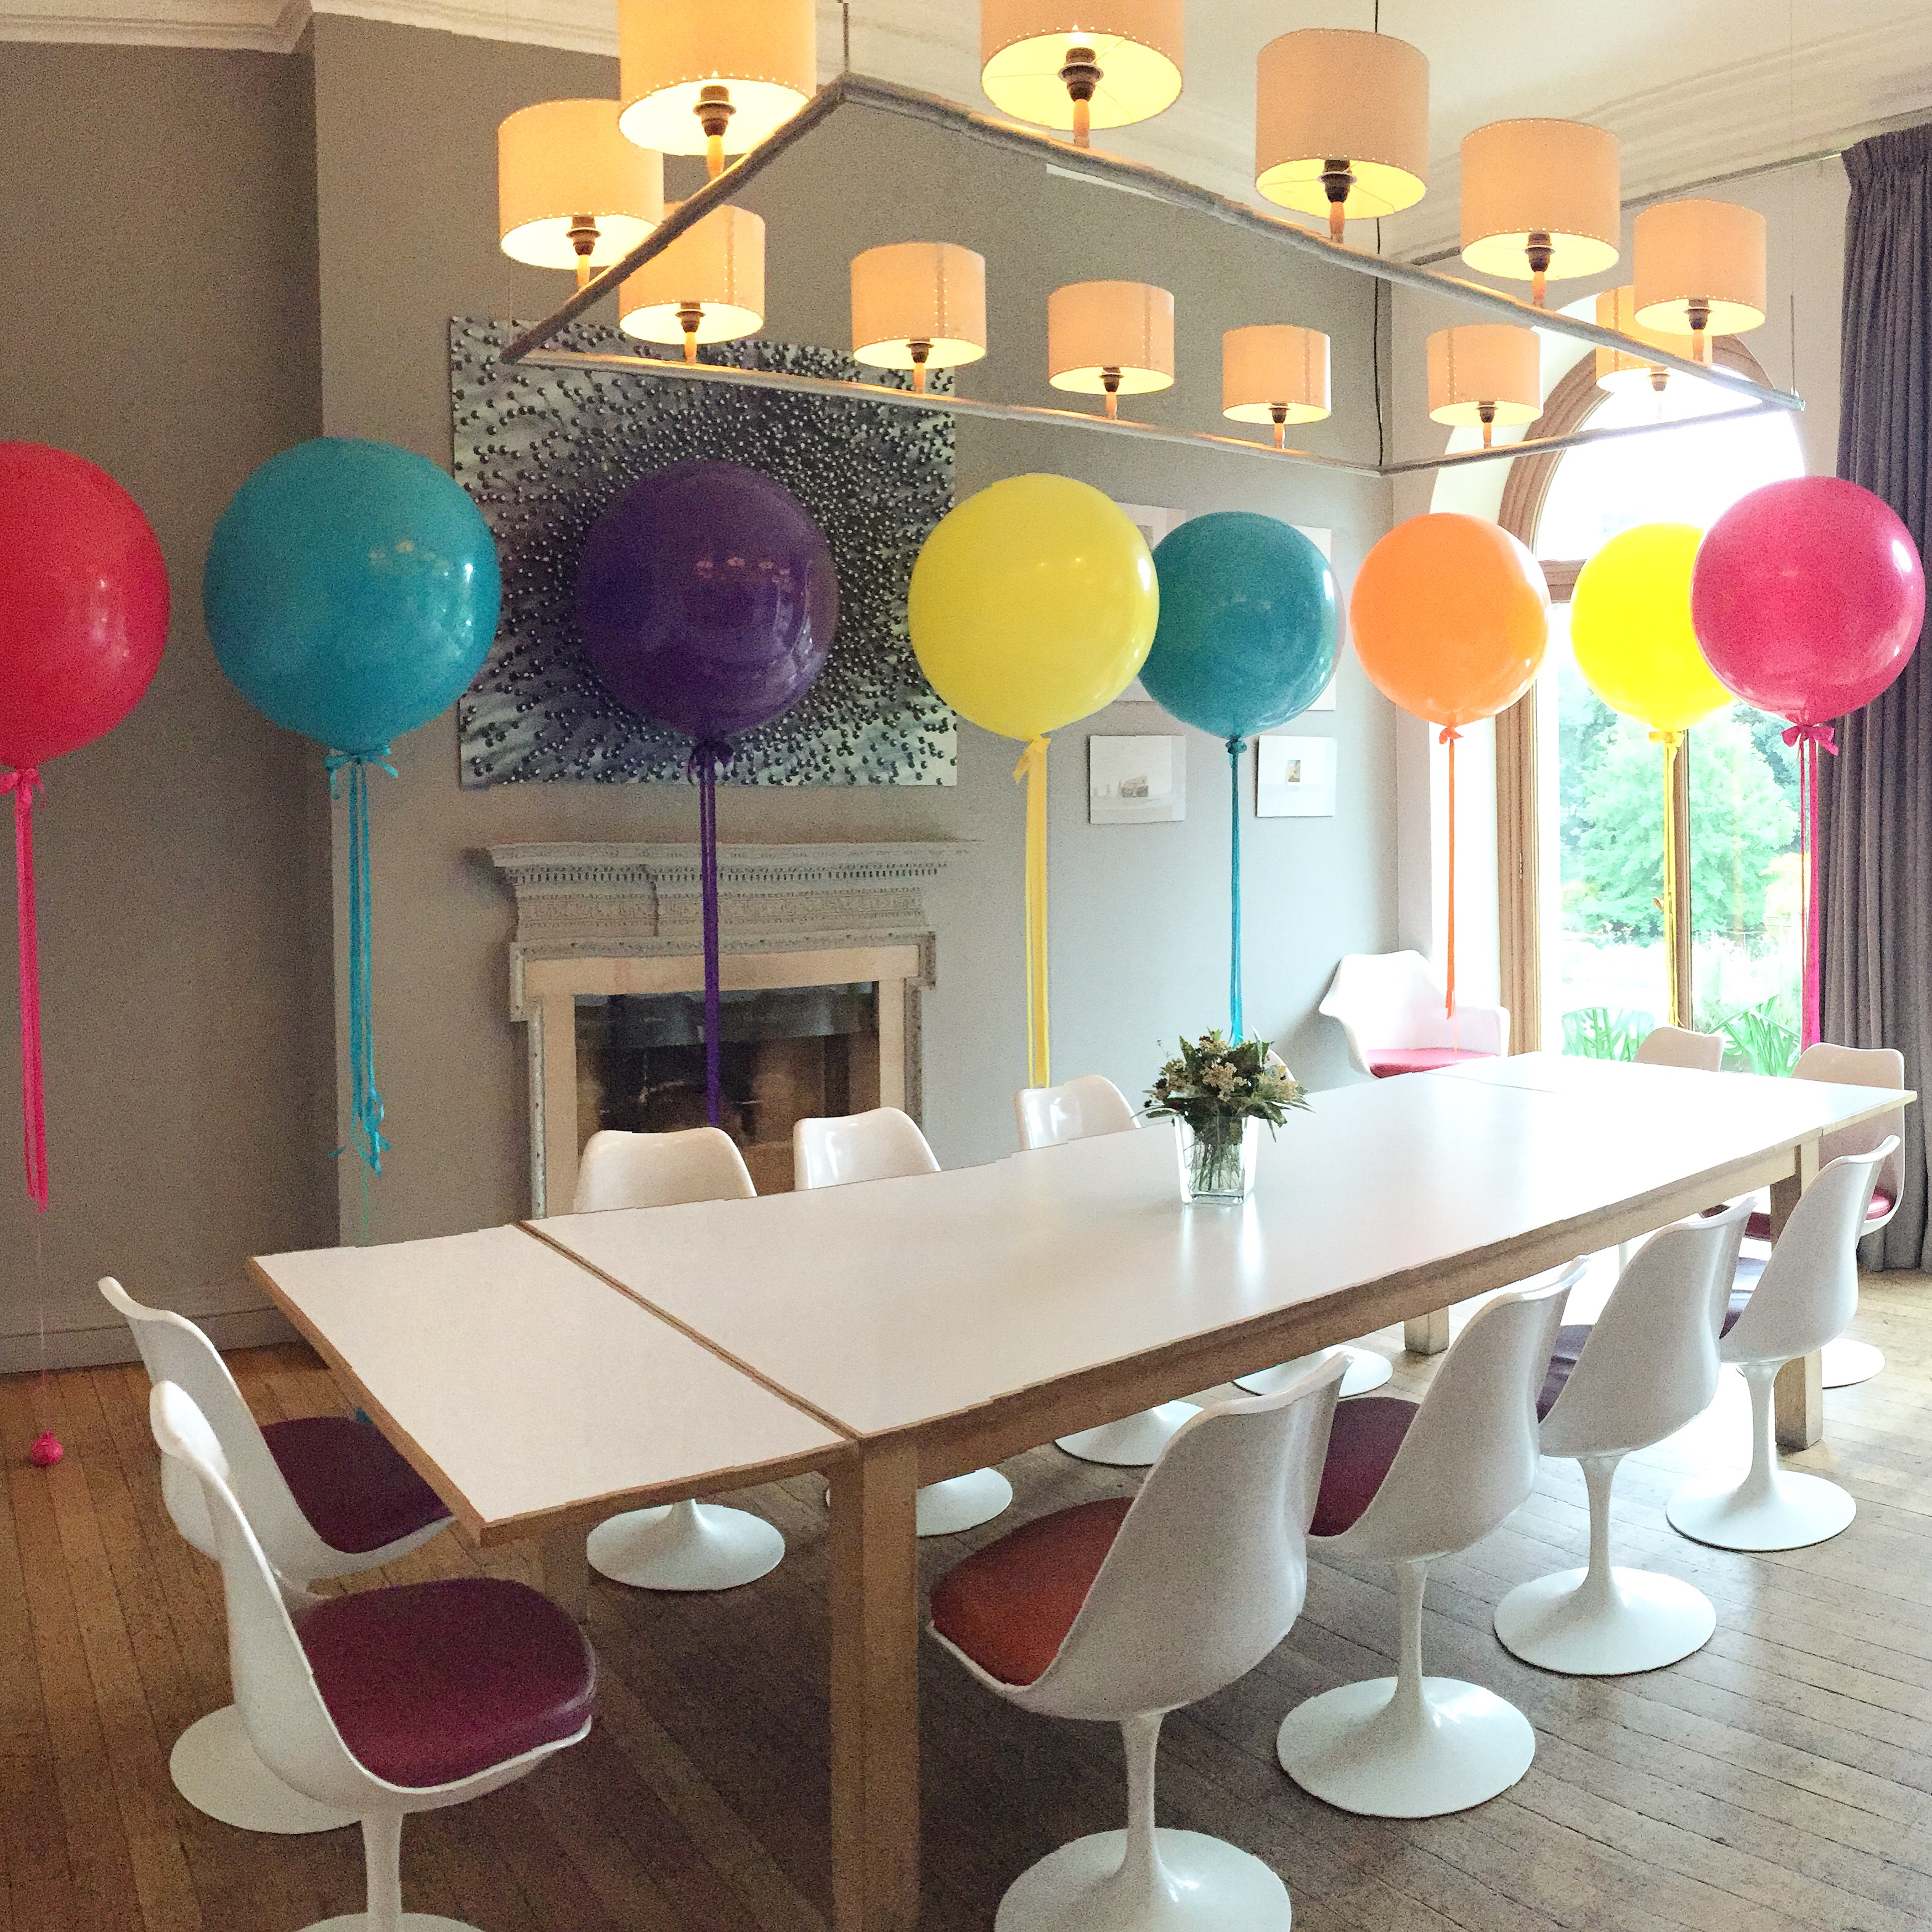 Giant Balloons at Cowley Manor